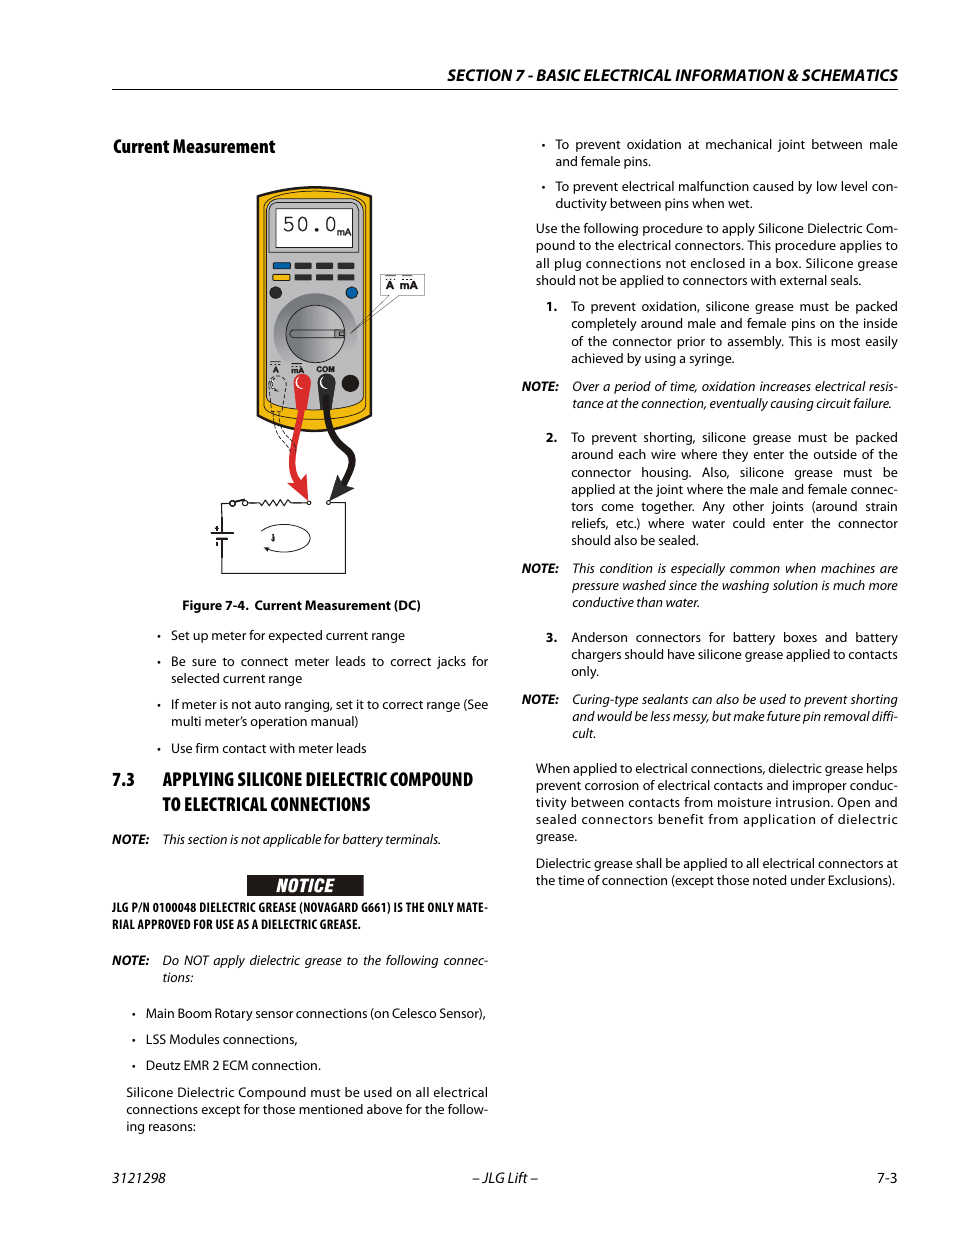 hight resolution of current measurement current measurement 3 current measurement dc 3 jlg 660sj service manual user manual page 303 328